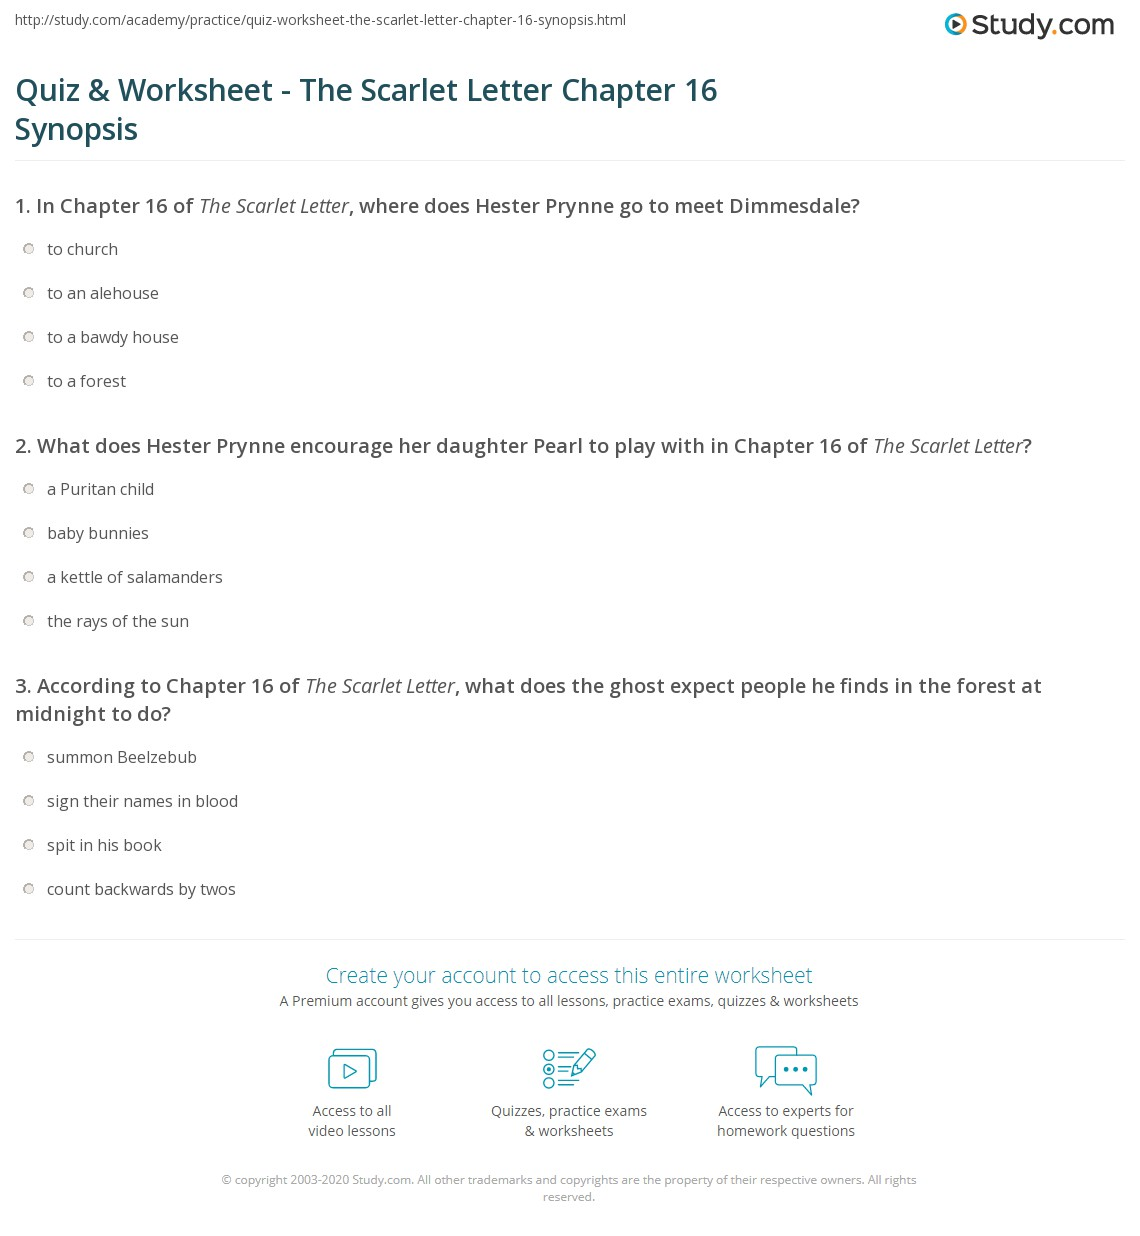 Quiz & Worksheet   The Scarlet Letter Chapter 16 Synopsis | Study.com